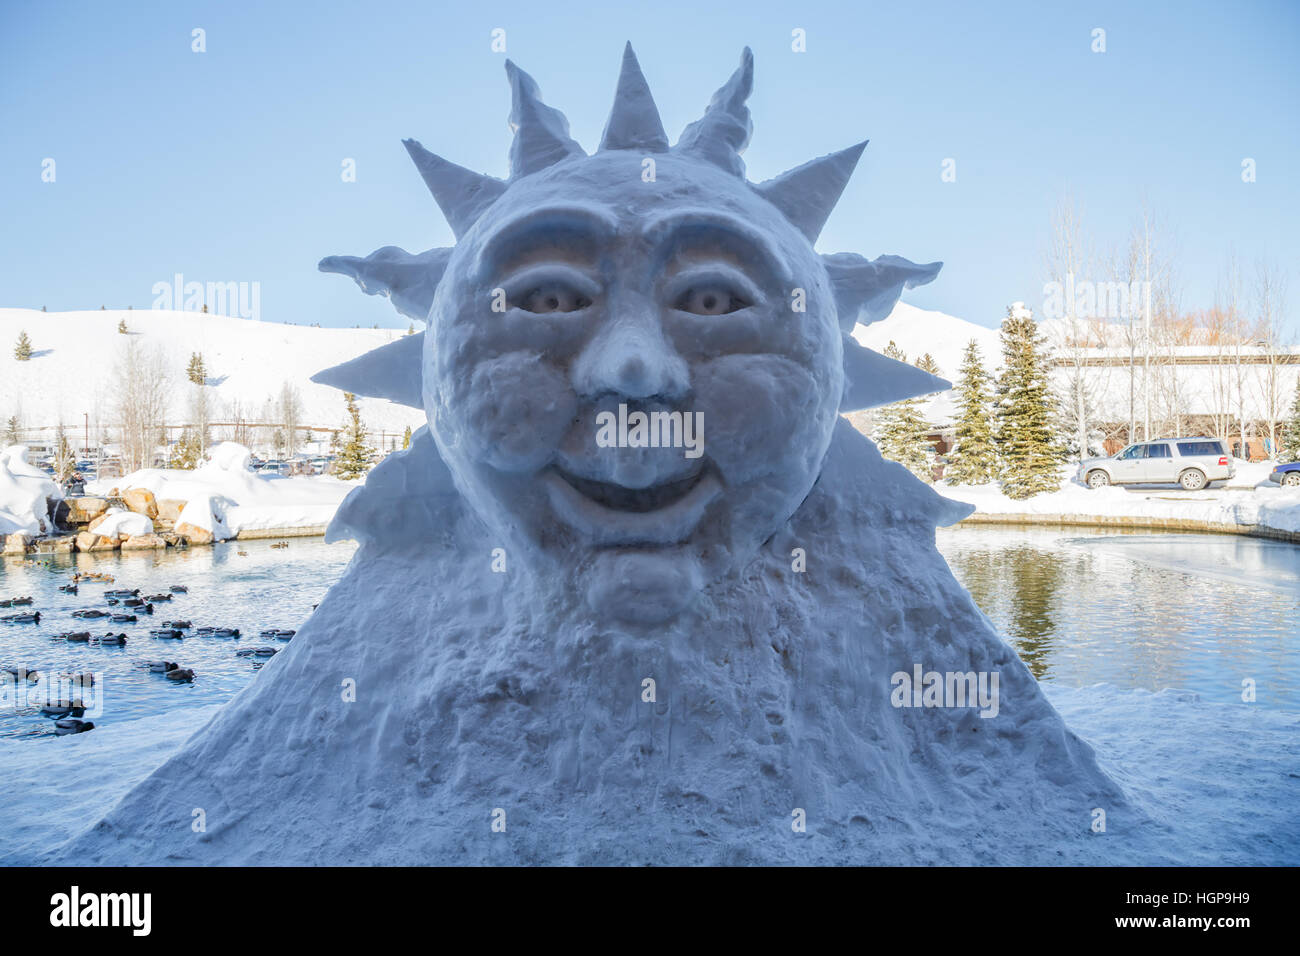 The 2016 Sun Valley Ice sculpture at Sun Valley Lodge - Stock Image